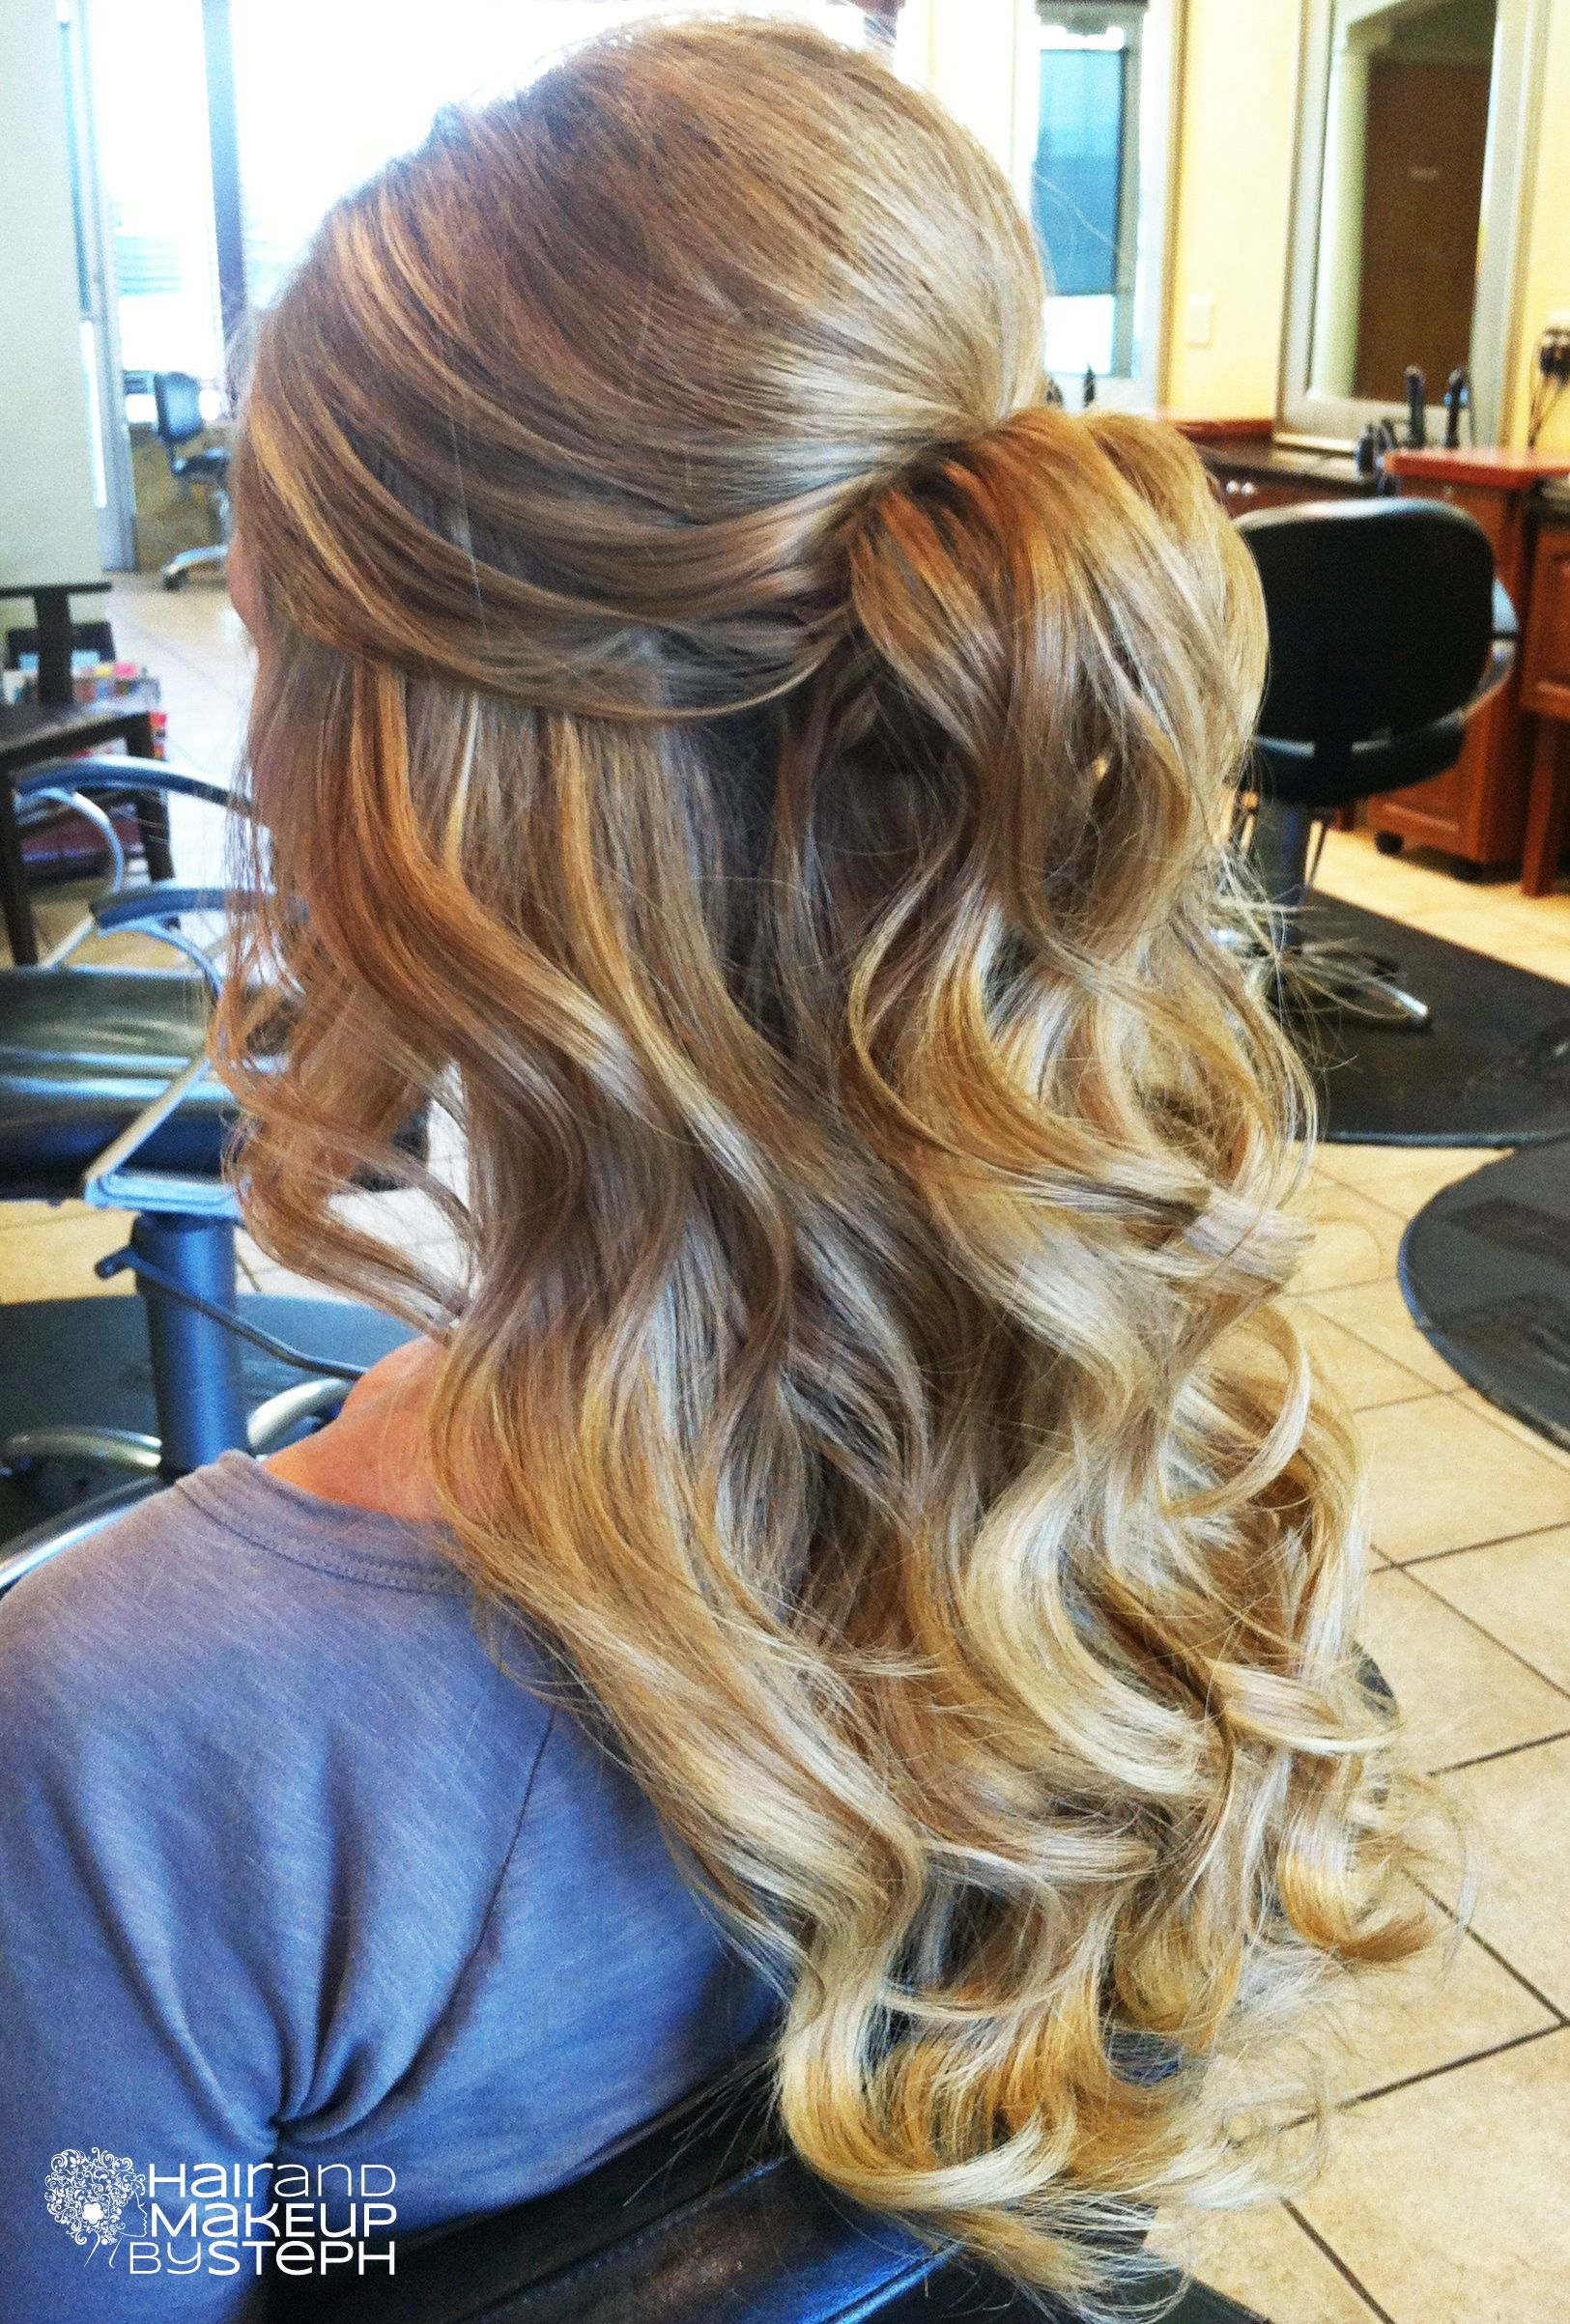 Hair and makeup by steph hairstyles to try pinterest hair